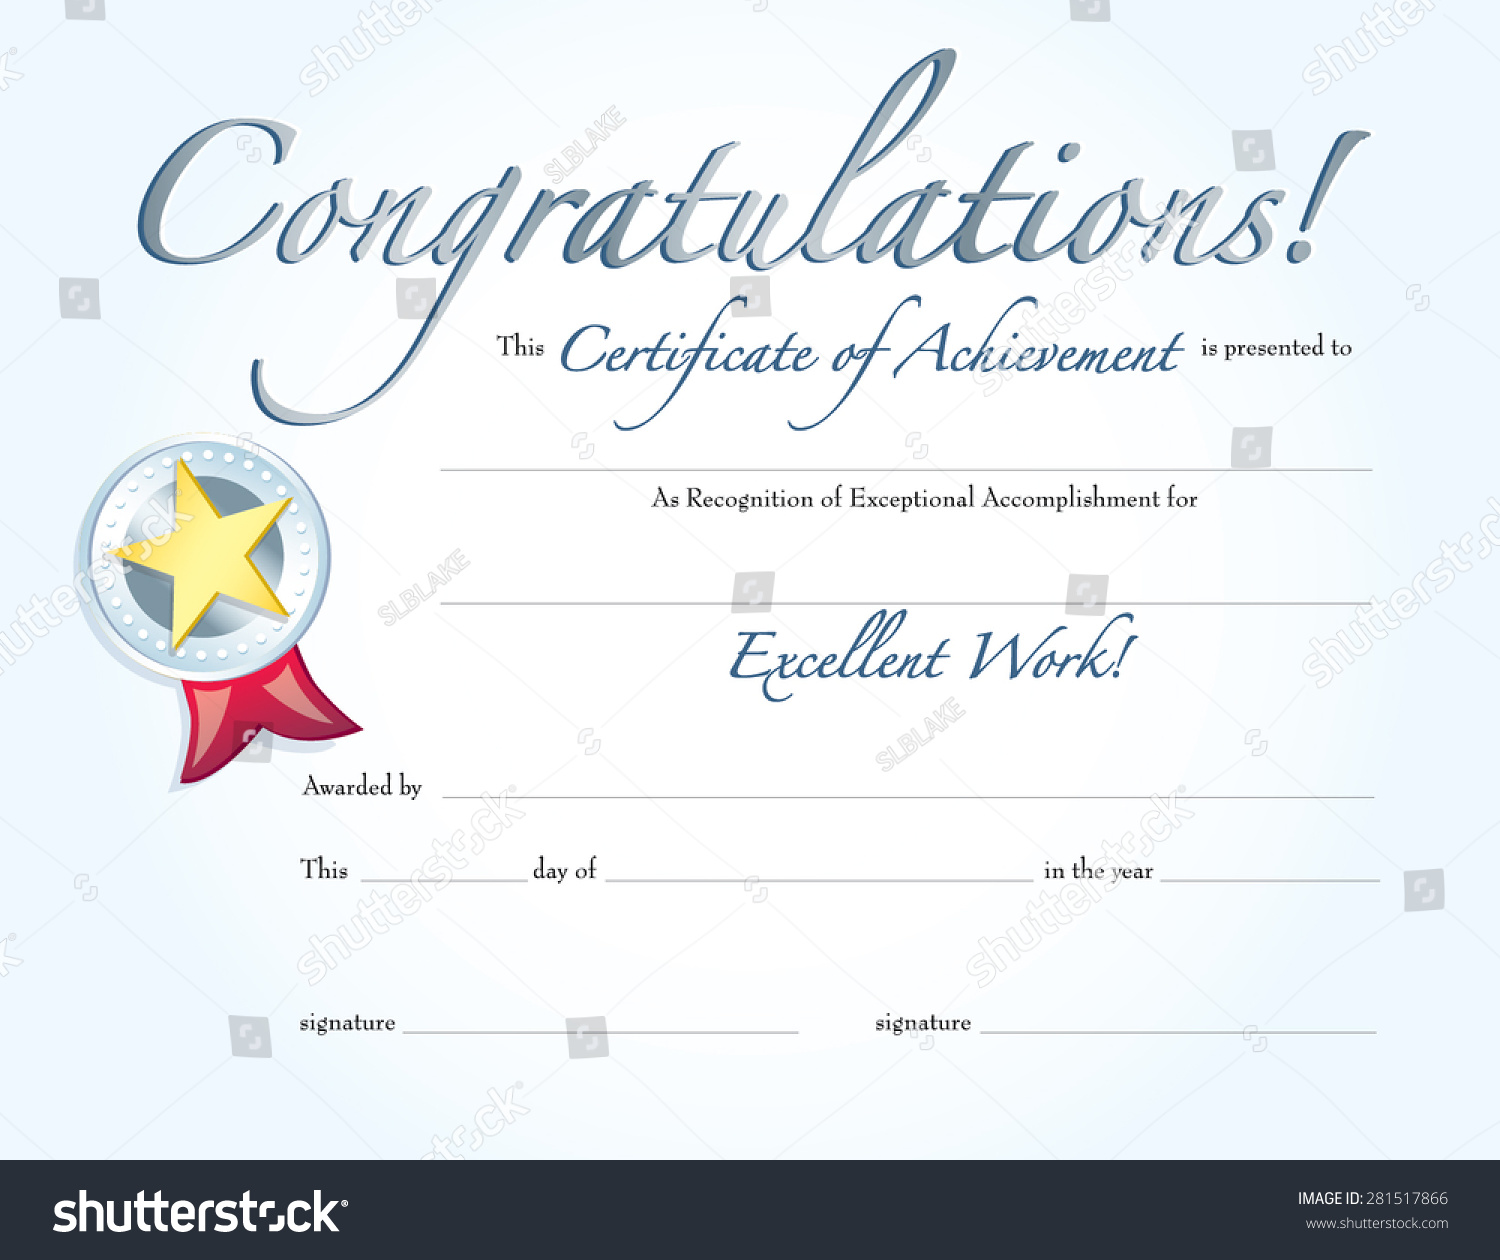 award templates free word 1000 images about art award free of – Award Templates Word